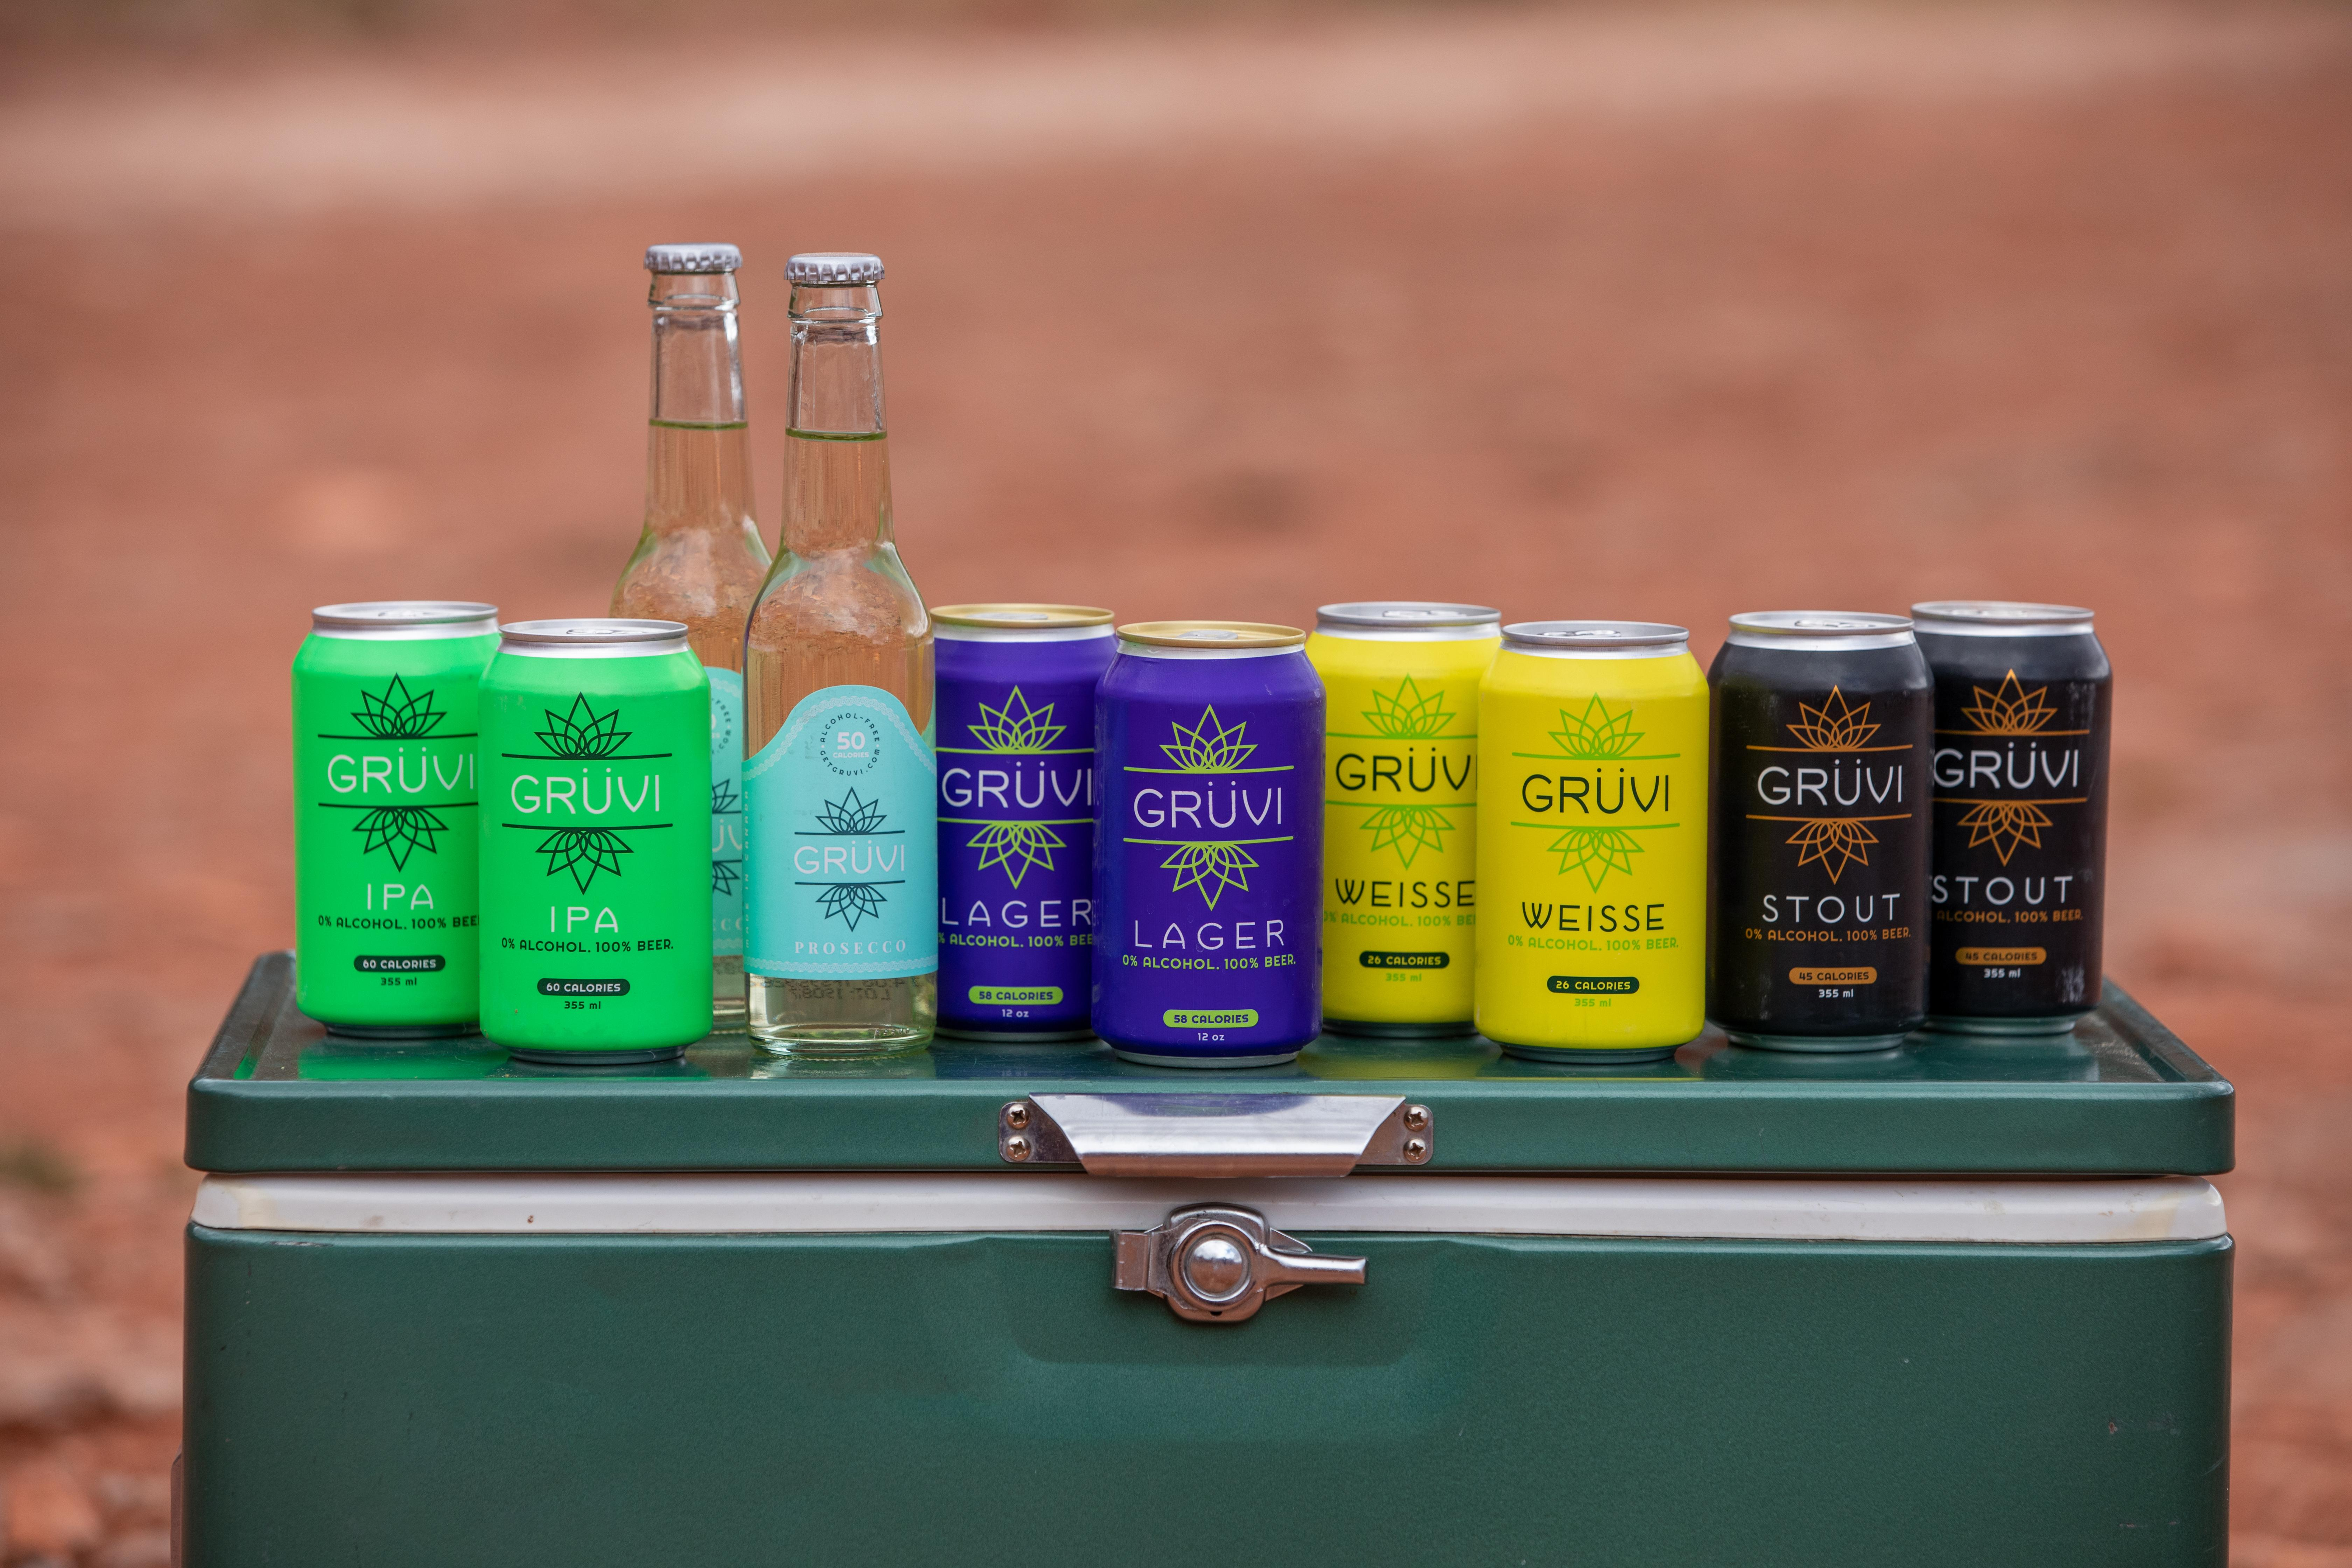 This Non-Alcoholic Drink Brand is Helping to Promote Colorado's Sober-Conscious Movement